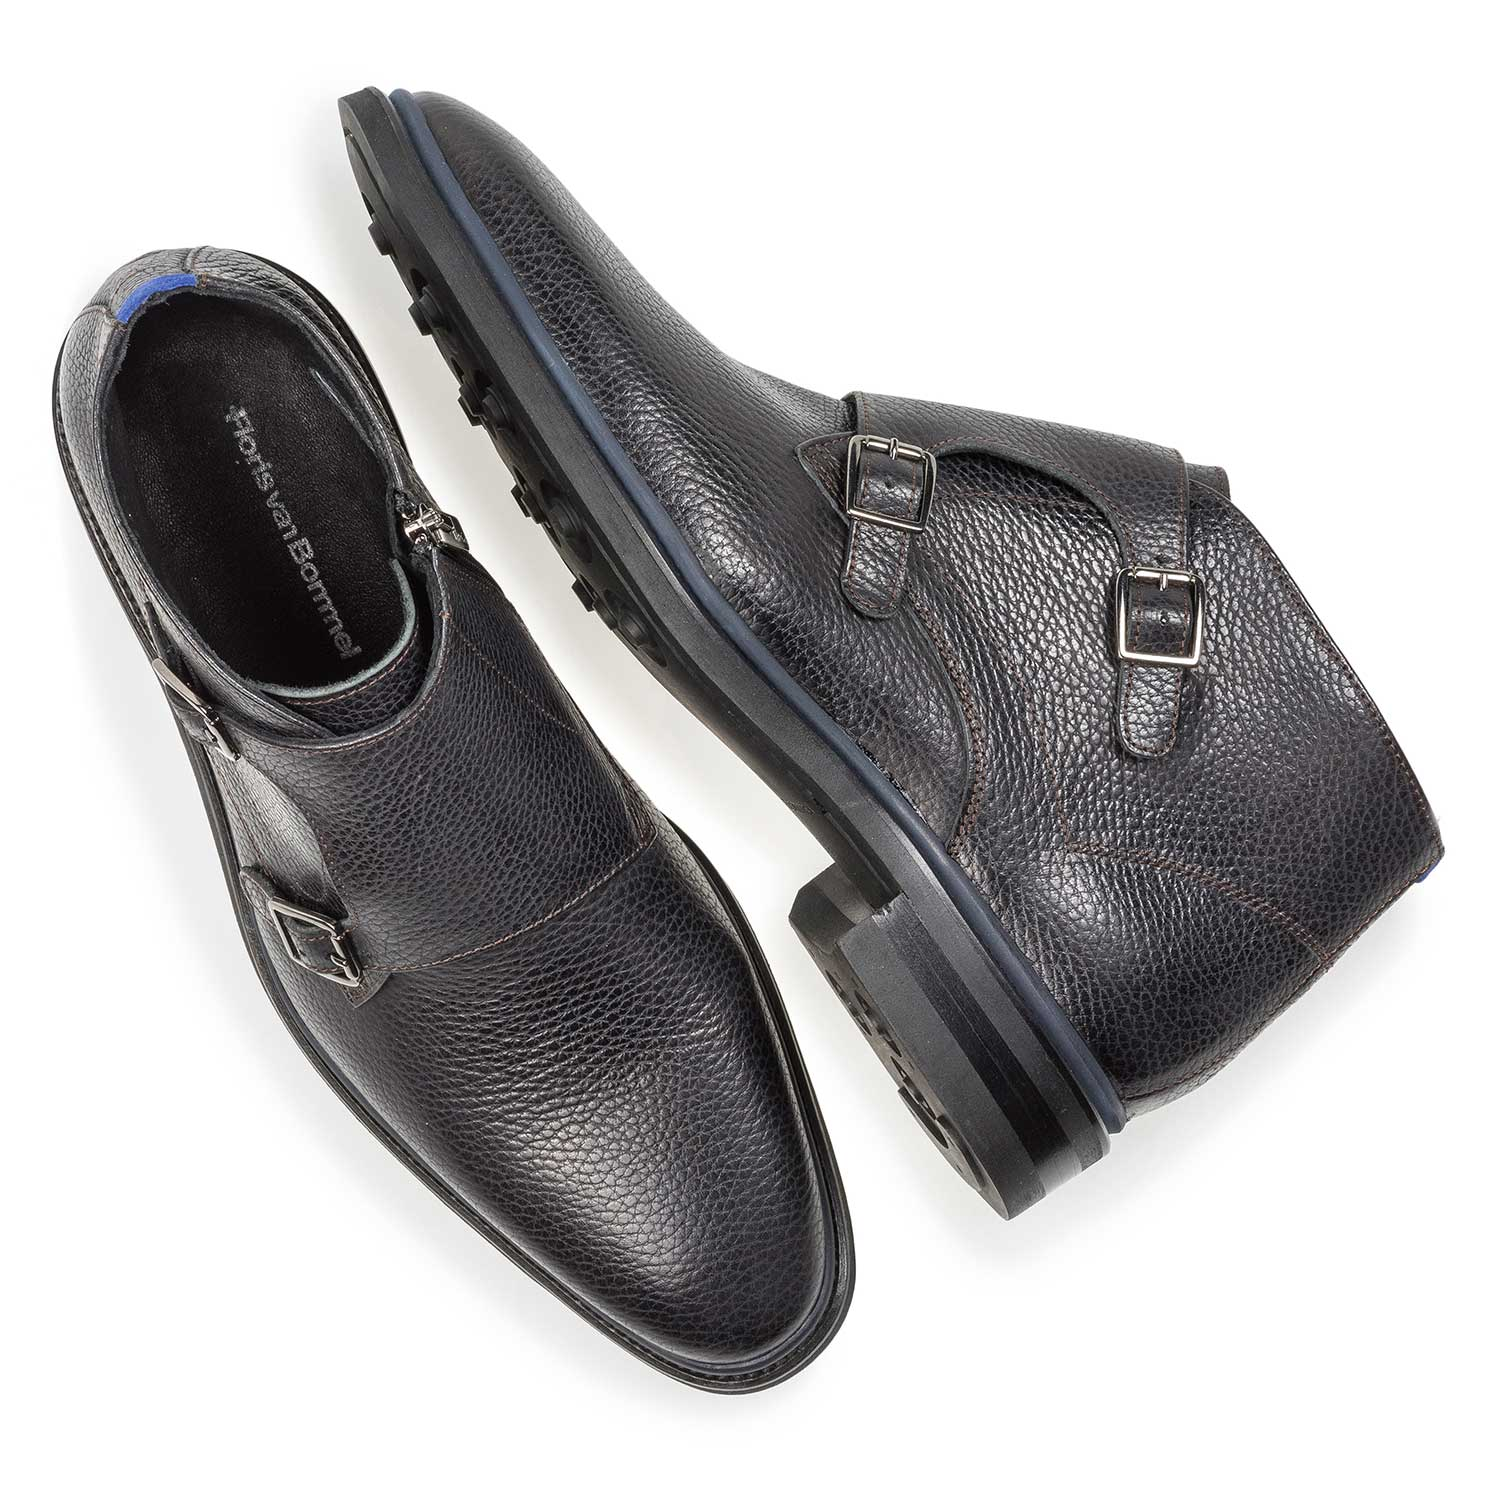 10672/03 - Black calf leather monk strap with print